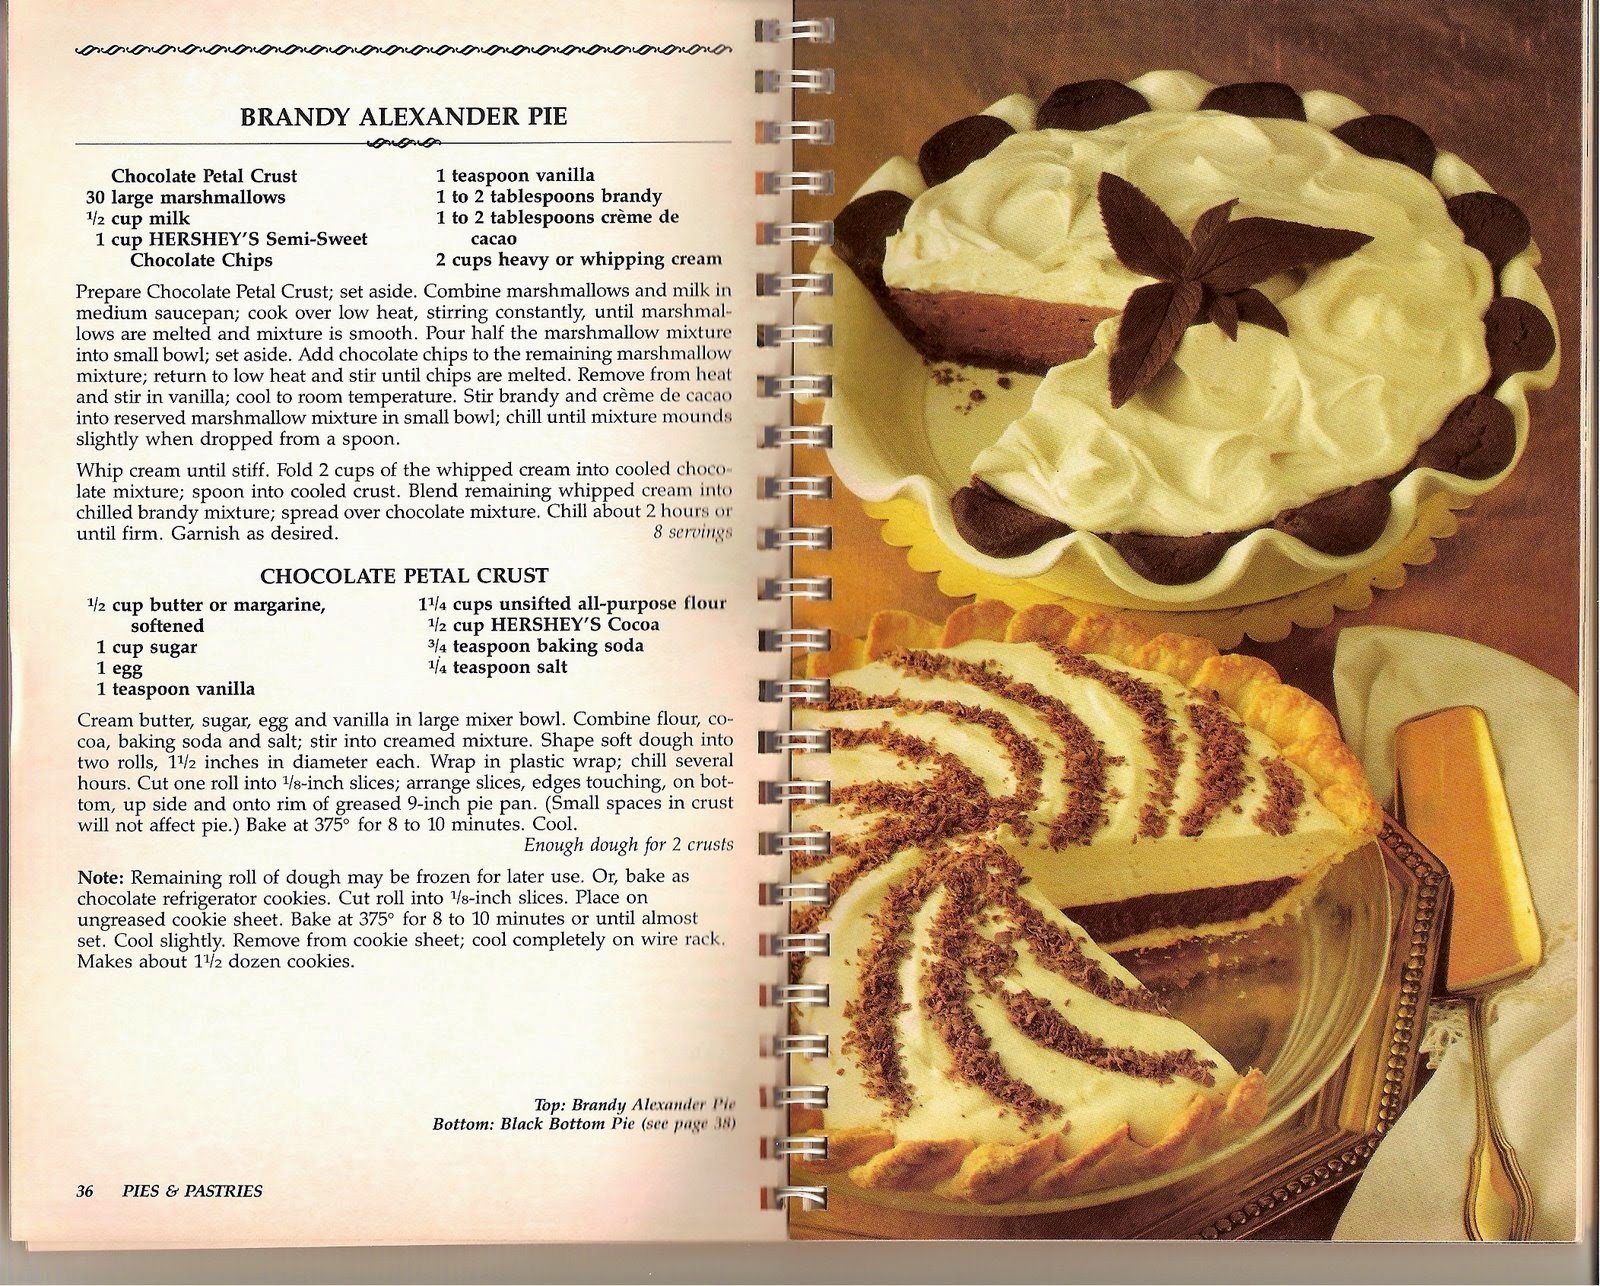 http://grammy-alimentatorecipes.blogspot.com/2009/02/brandy-alexander-pie-chocolate-petal.html